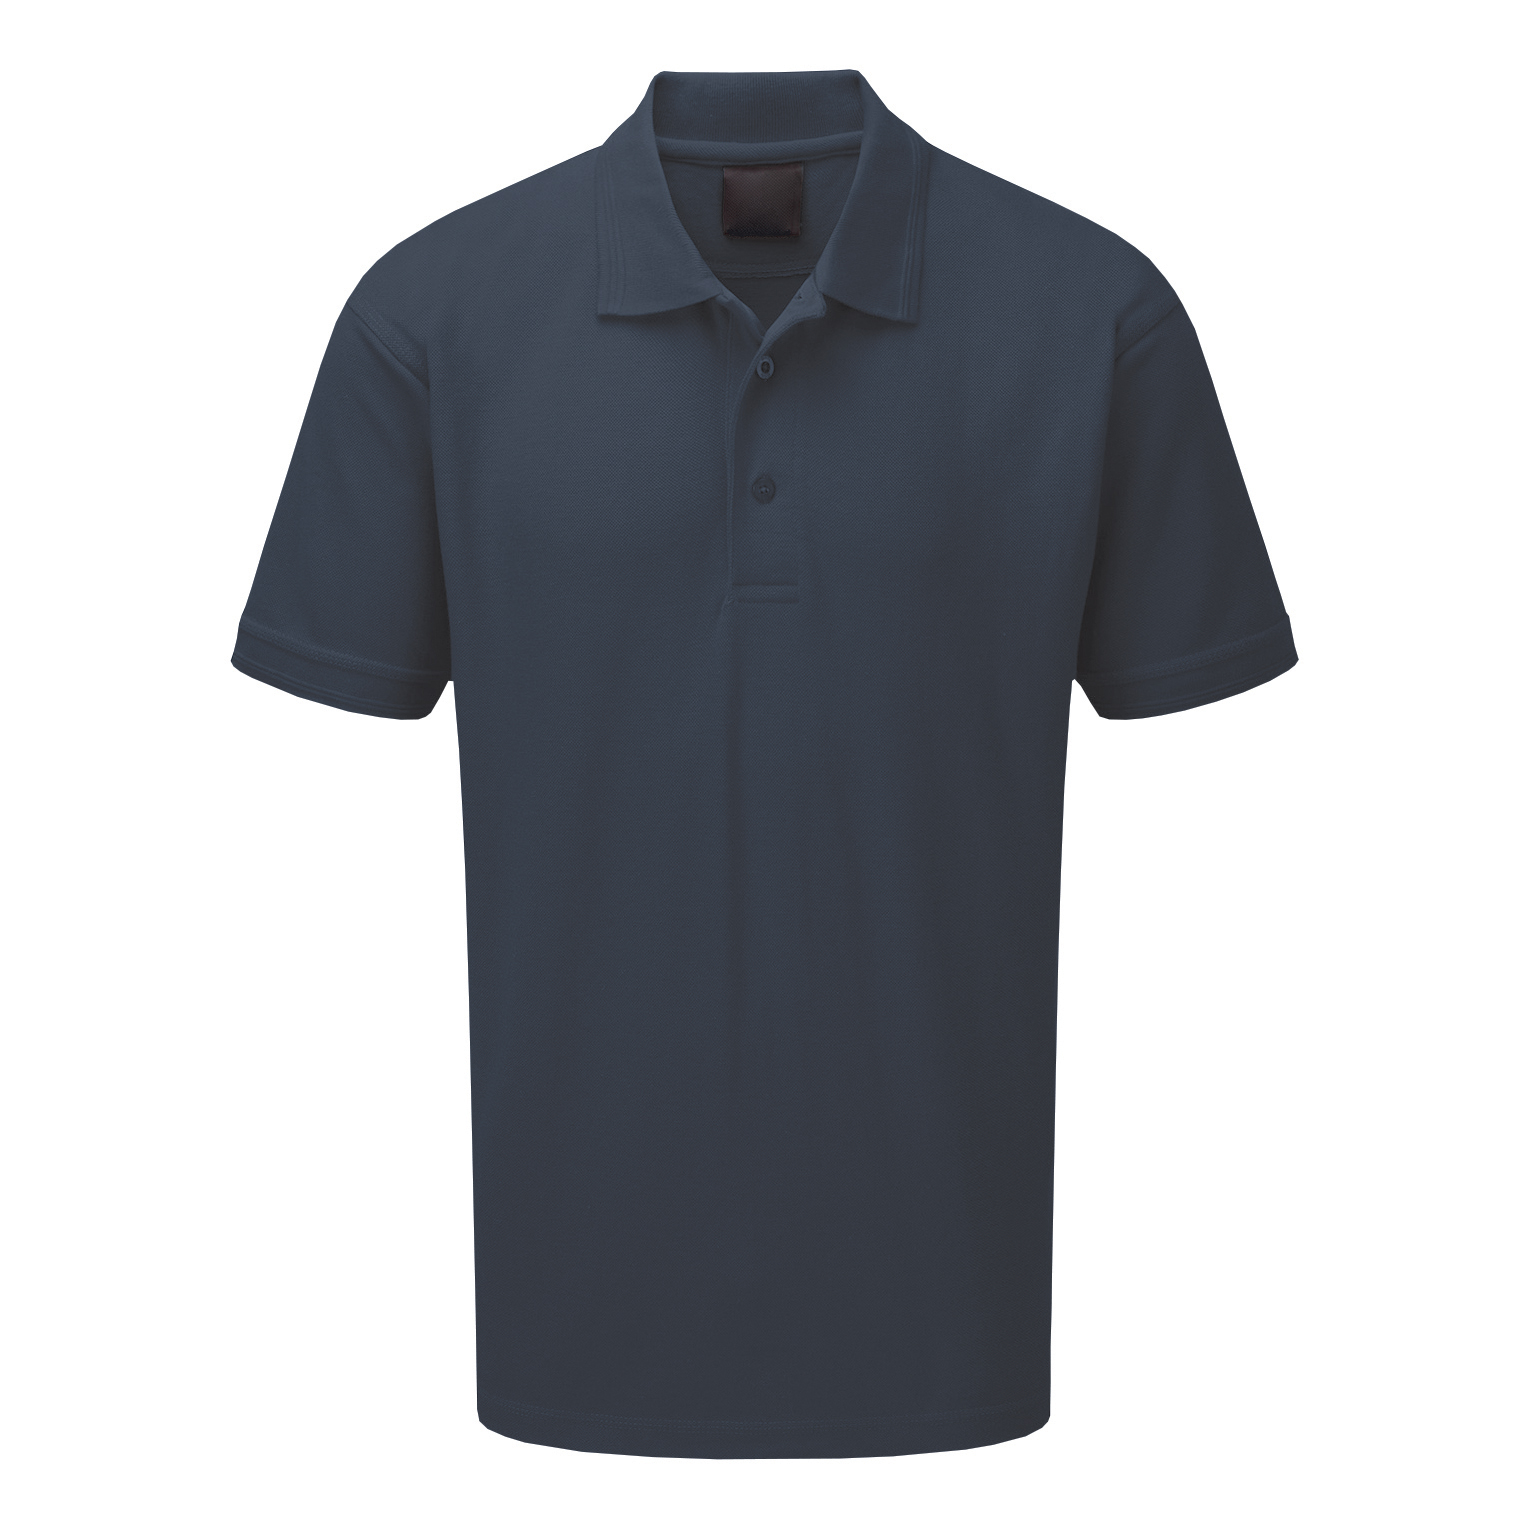 Business Polo Premium Triple Stitched Size Small Graphite